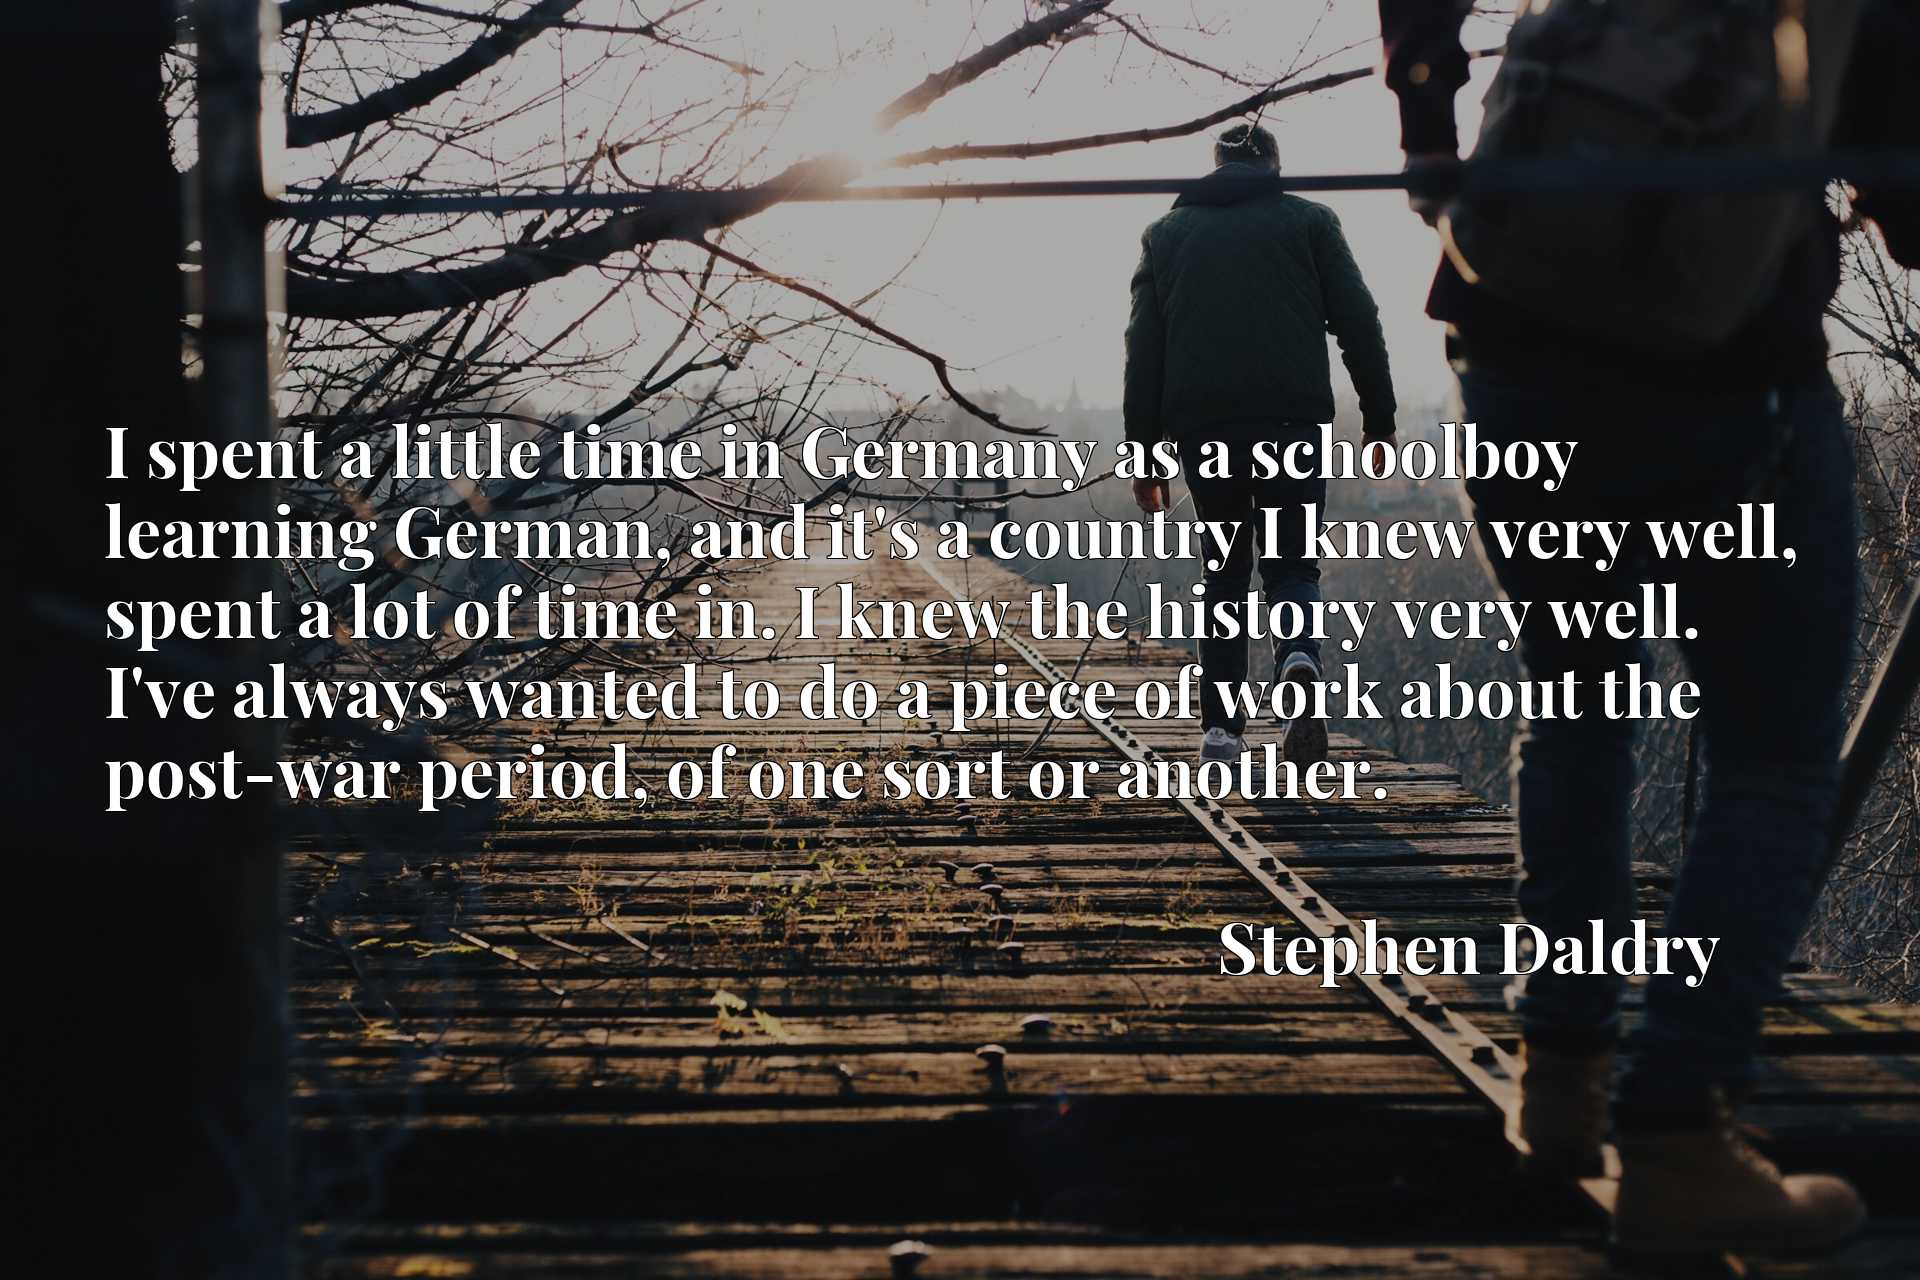 I spent a little time in Germany as a schoolboy learning German, and it's a country I knew very well, spent a lot of time in. I knew the history very well. I've always wanted to do a piece of work about the post-war period, of one sort or another.